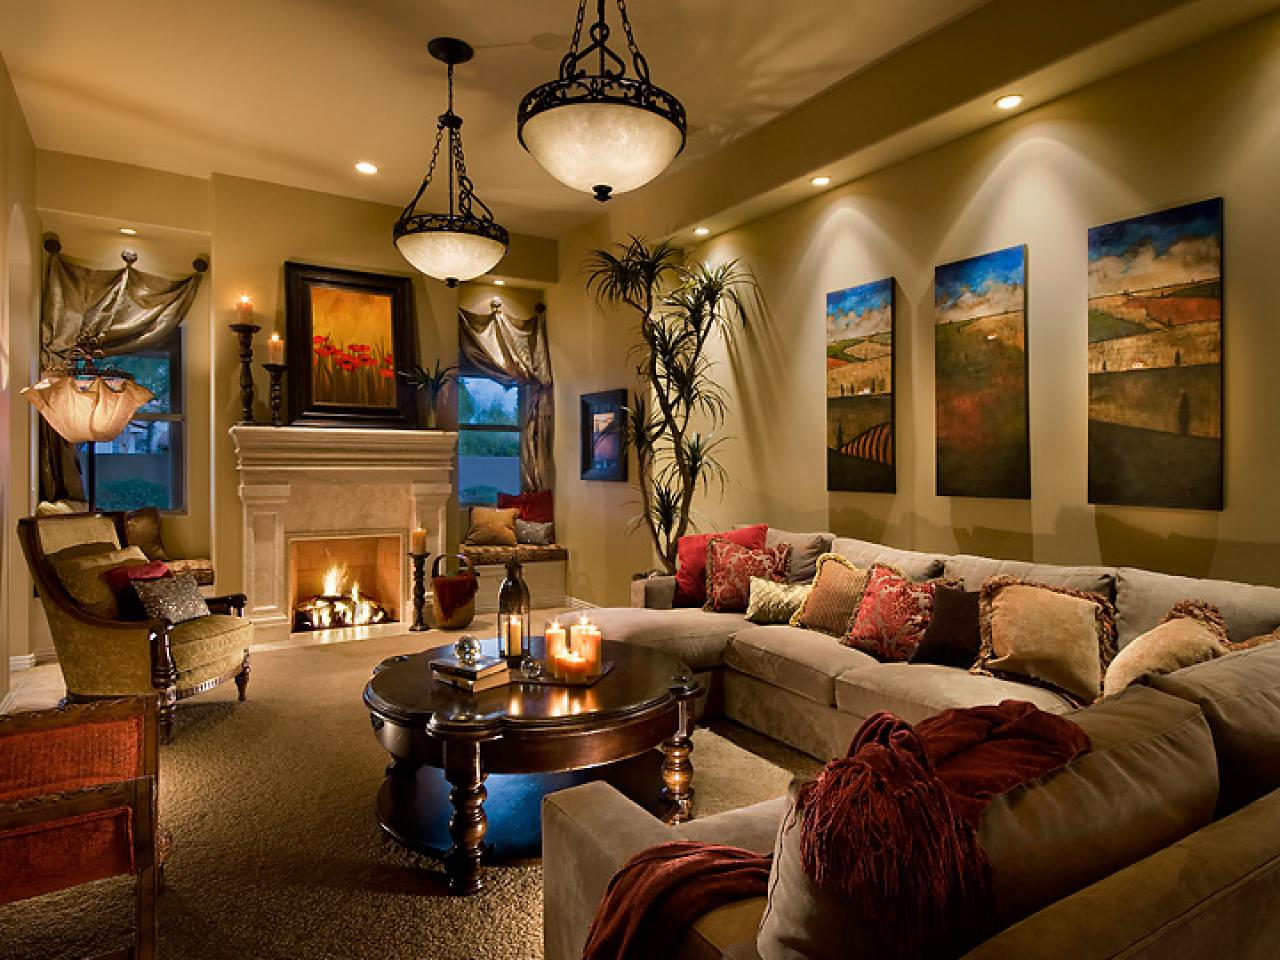 Living room lighting tips hgtv for Different interior designs of houses